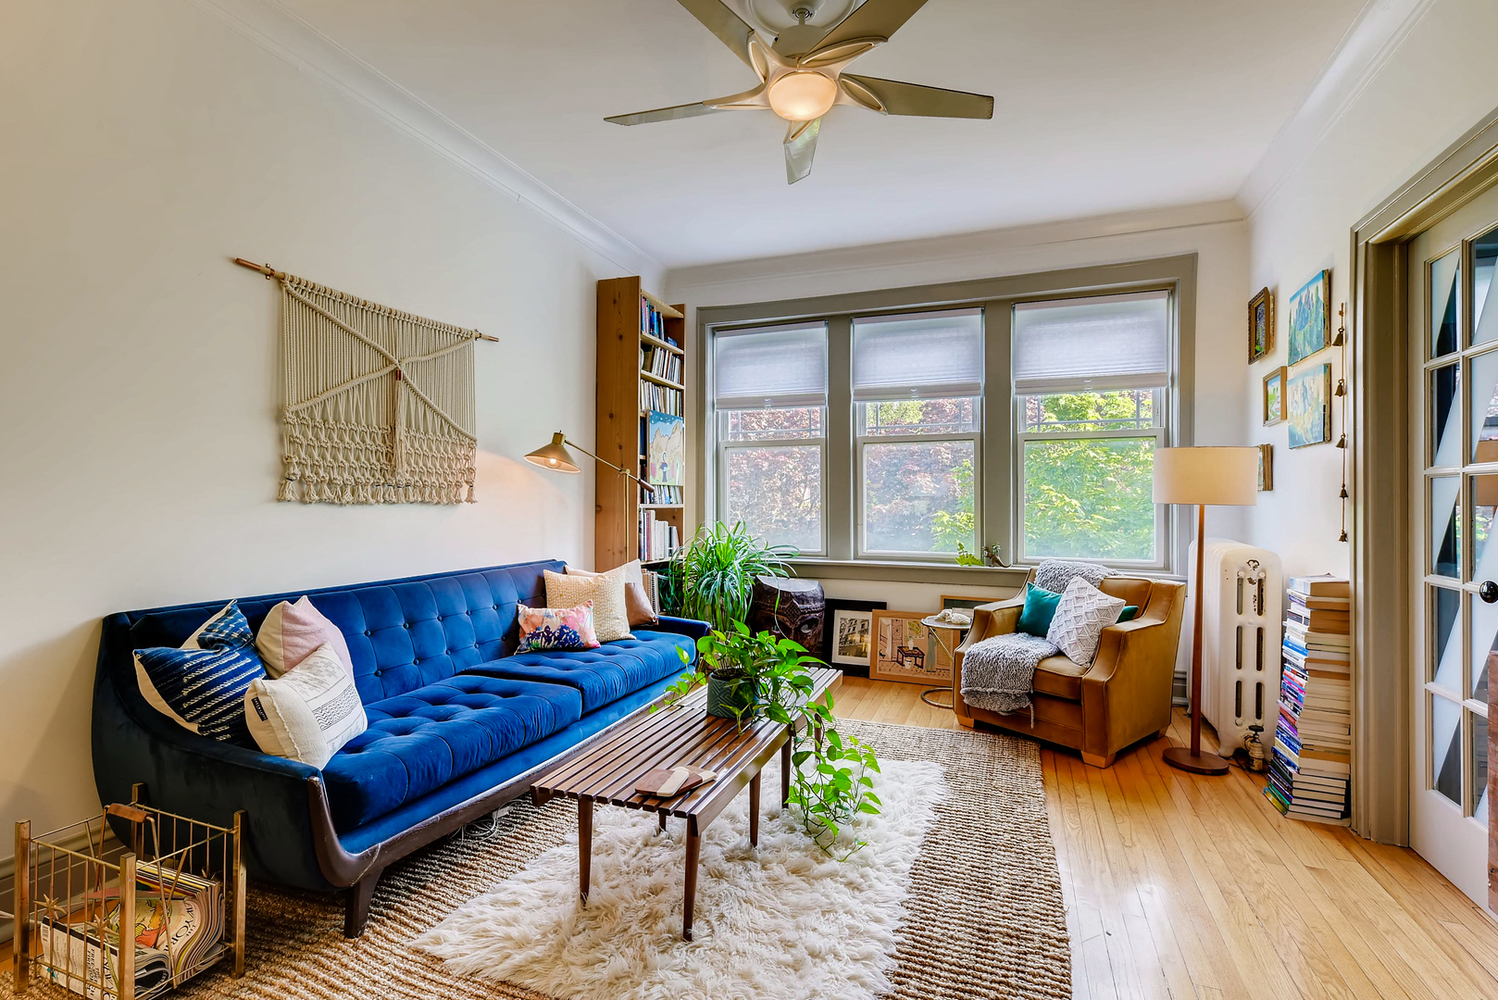 A photo of a living room with a blue couch, a large three-panel window, and a coffee table with a shag rug.